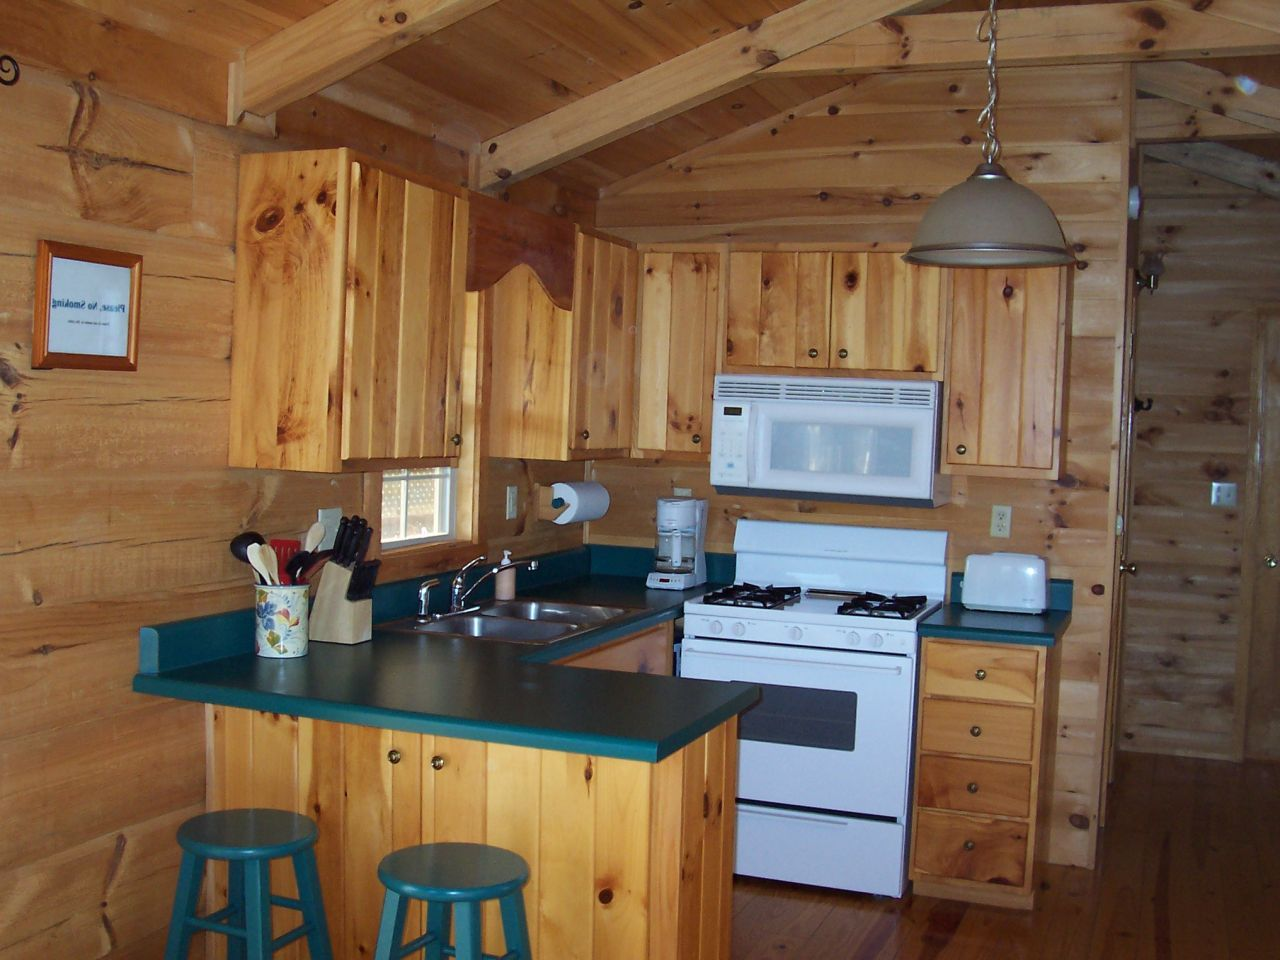 Kitchen cabinet ideas for log homes - Small Log Cabin Kitchen Ideas Blue To Black White Hob For Black Or Charcoral